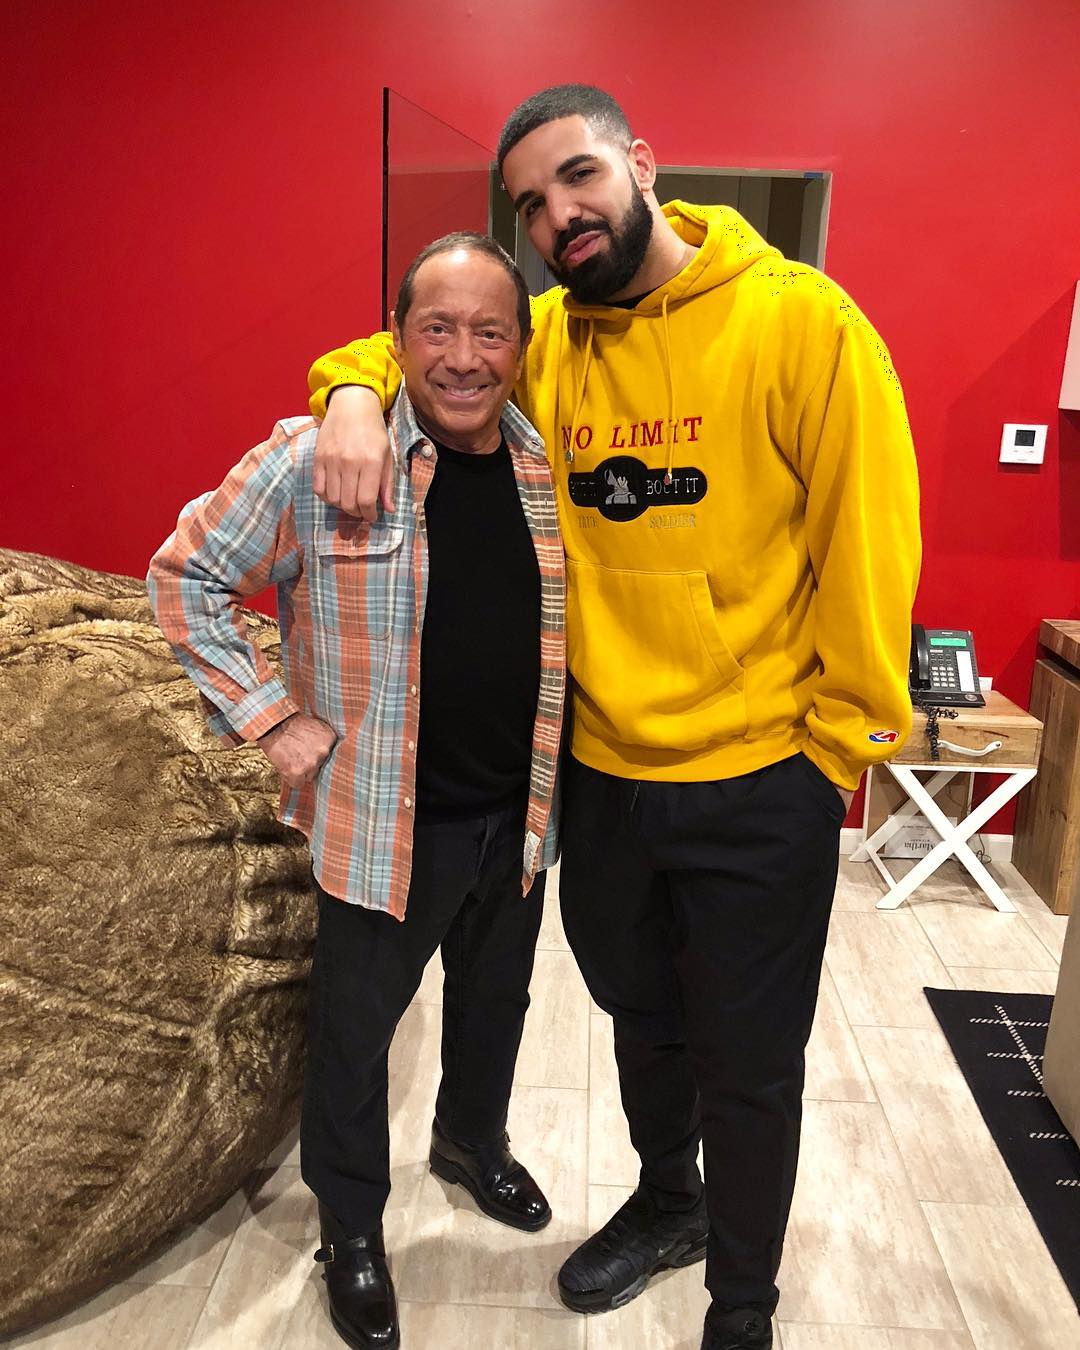 Paul Anka announces Drake collab out in June https://t.co/yxnkIUvNct https://t.co/McExbYsSoR